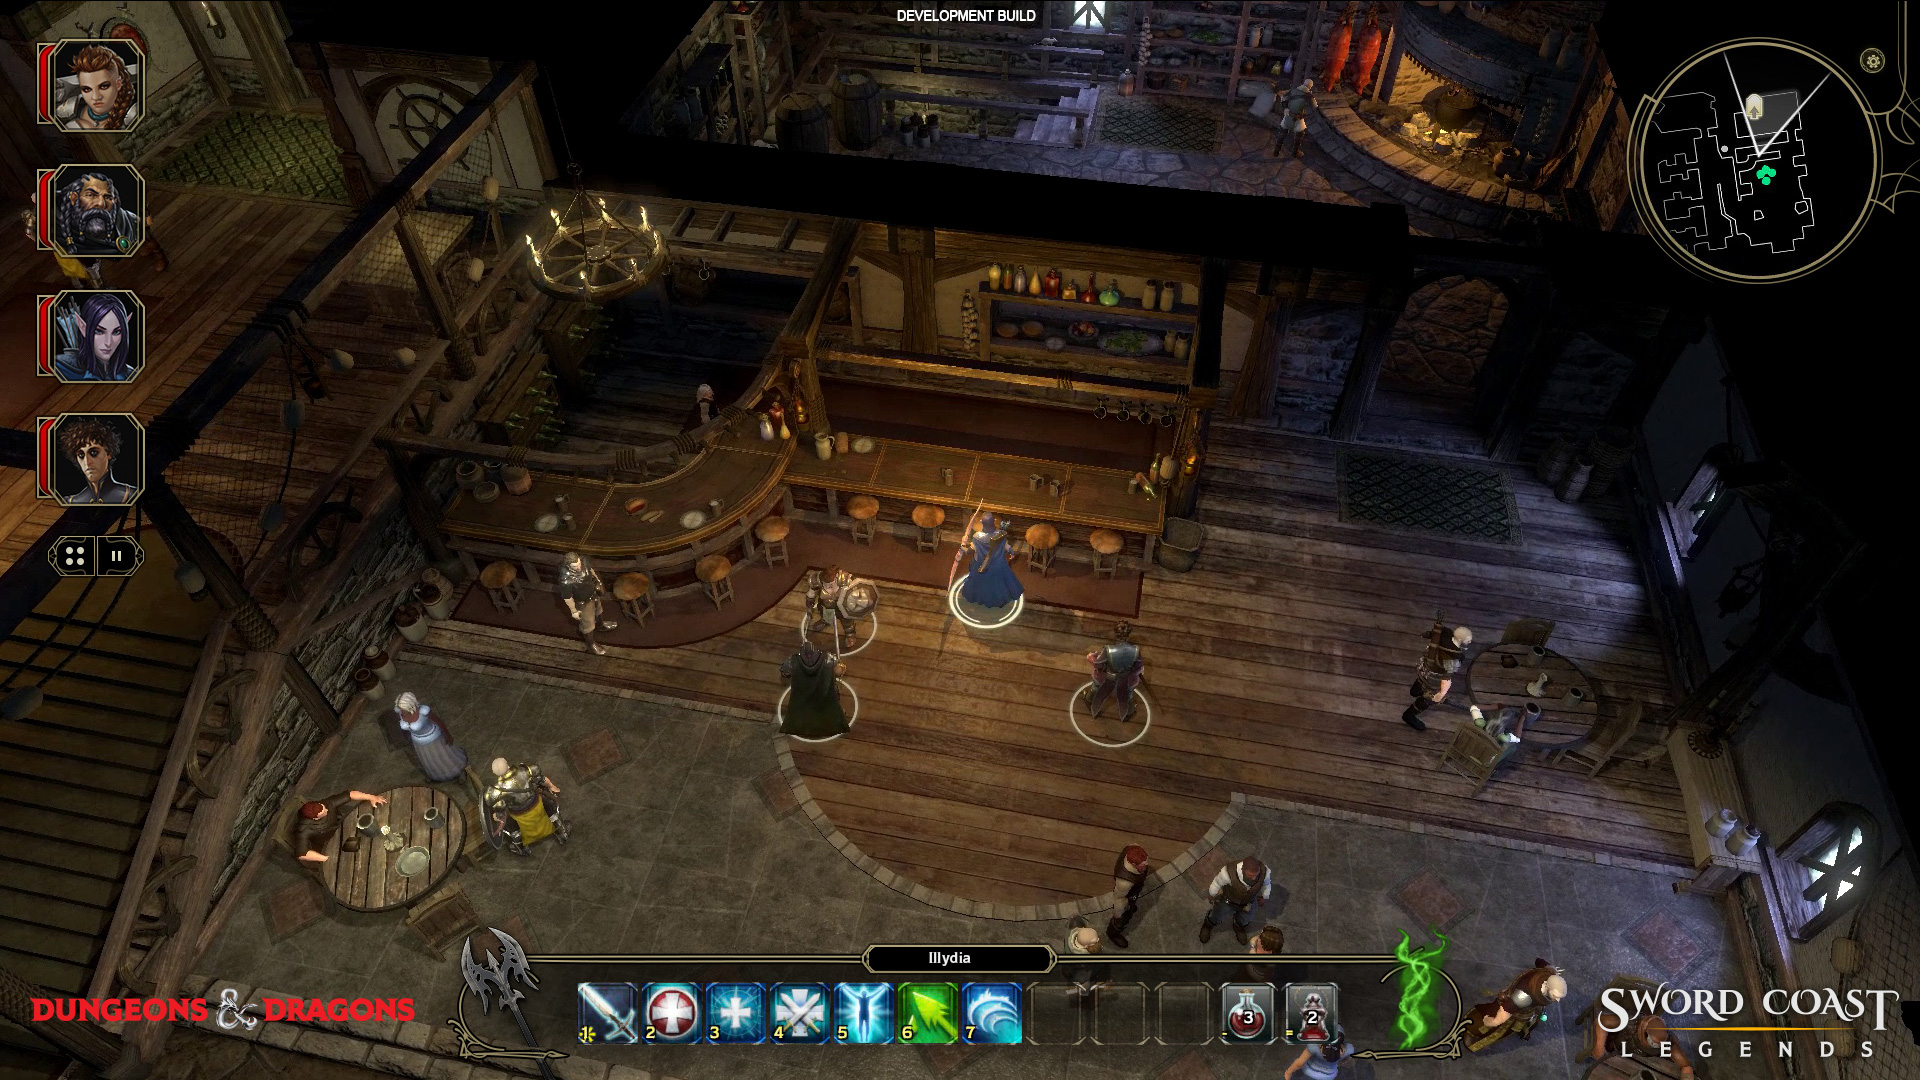 Sword Coast Legends: Un posible heredero de Neverwinter